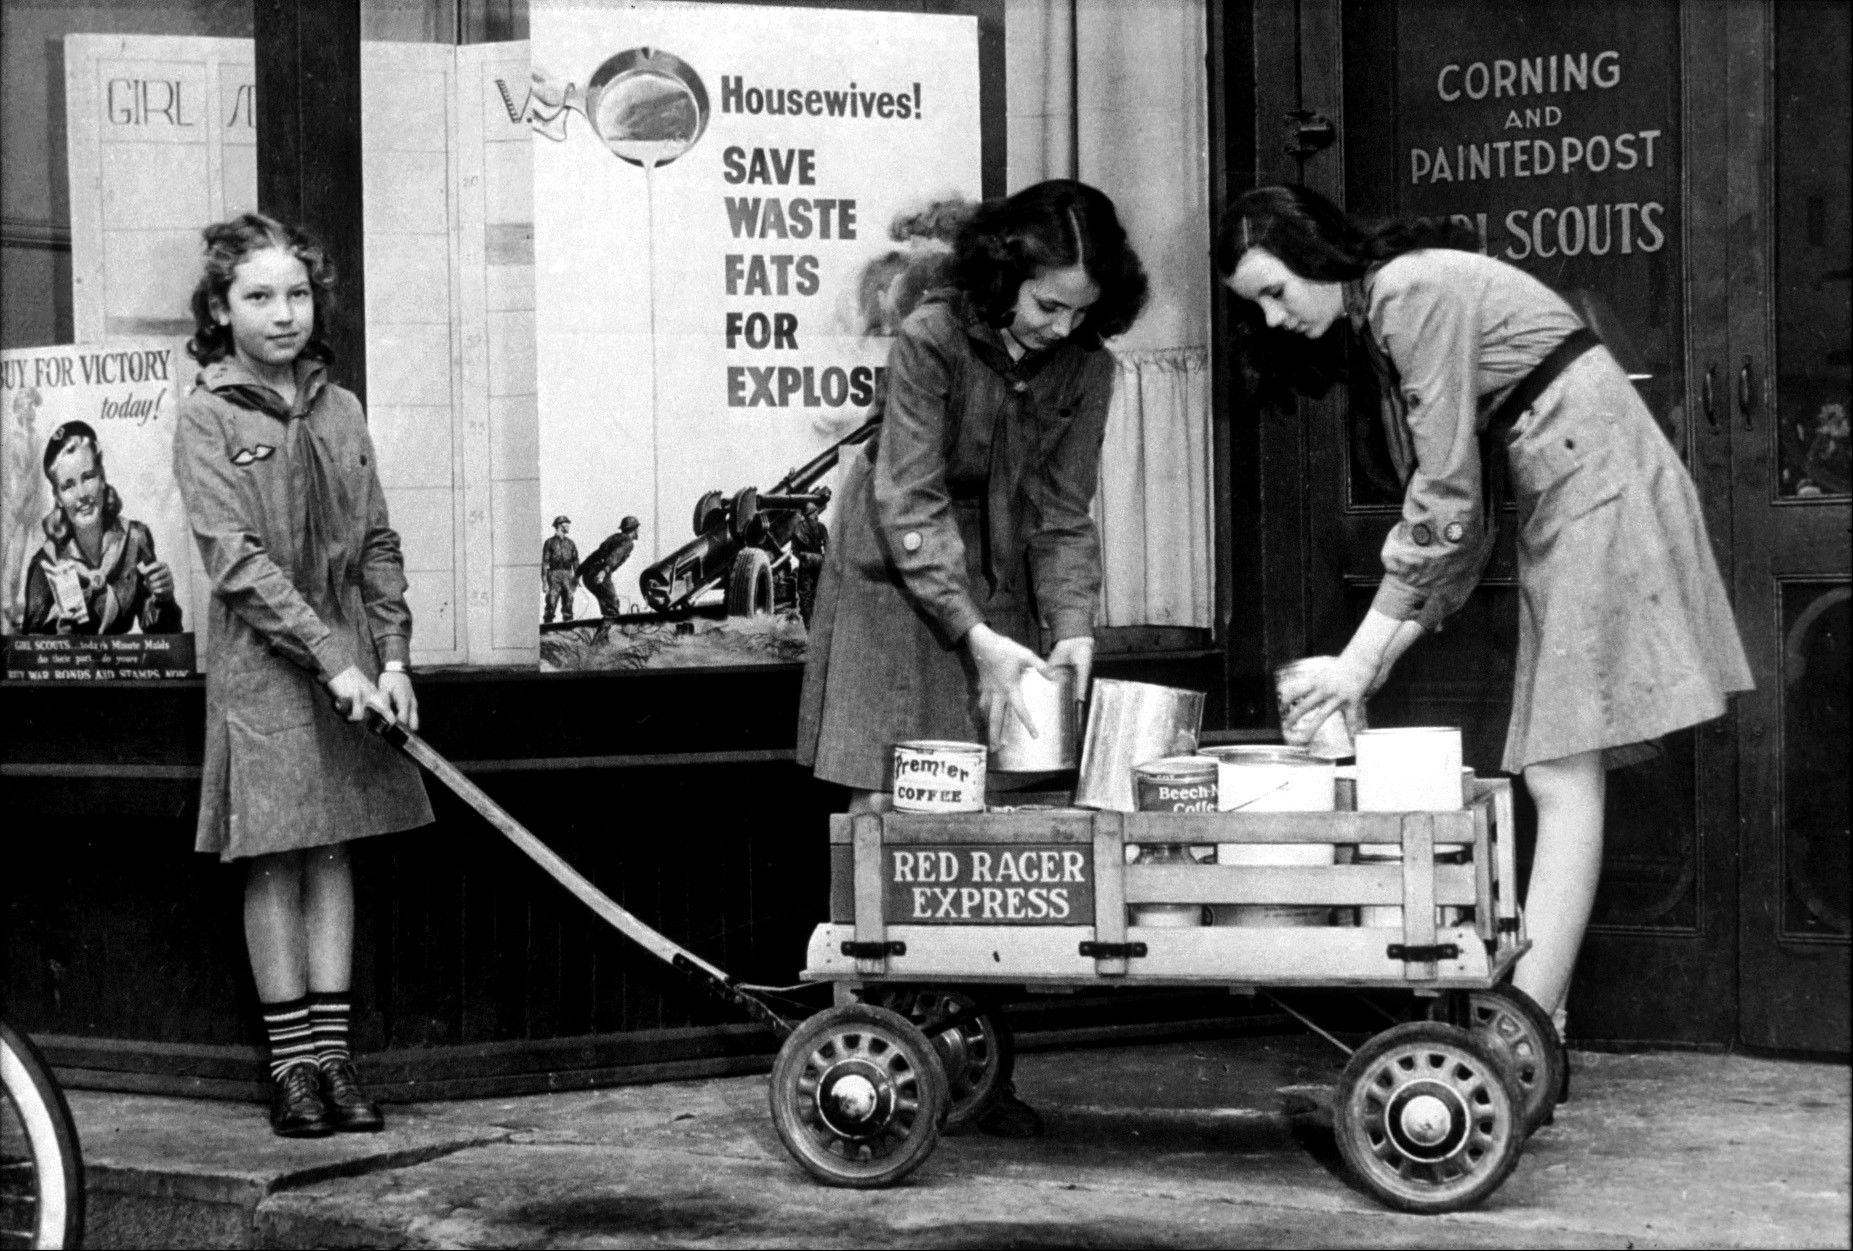 Each generation of Girl Scouts is taught to help others. In the 1940s, Girl Scouts, in front of a Girl Scout Council office, load a wagon with canned goods in support of the war effort.